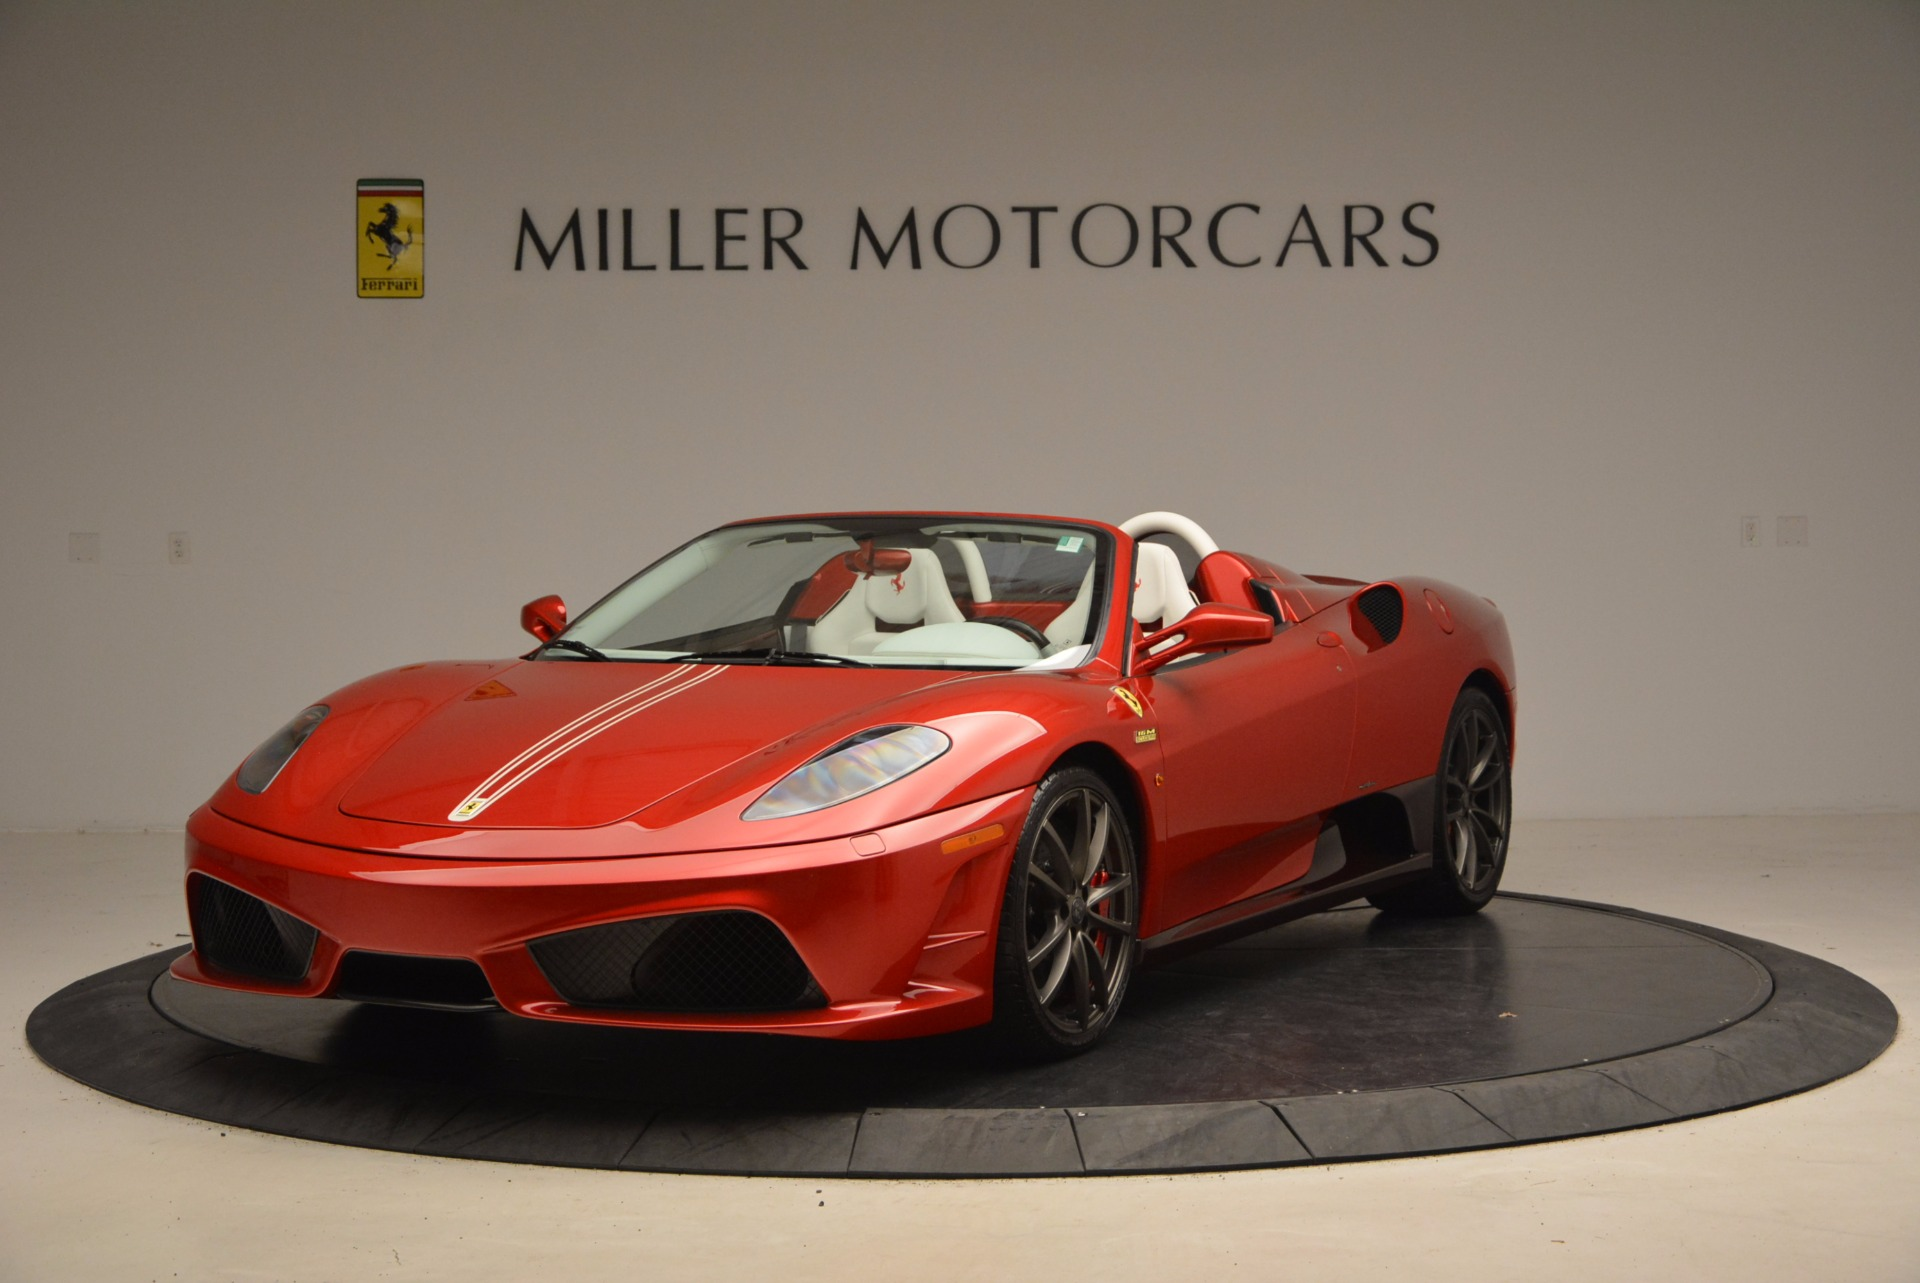 Used 2009 Ferrari F430 Scuderia 16M for sale Sold at Bentley Greenwich in Greenwich CT 06830 1